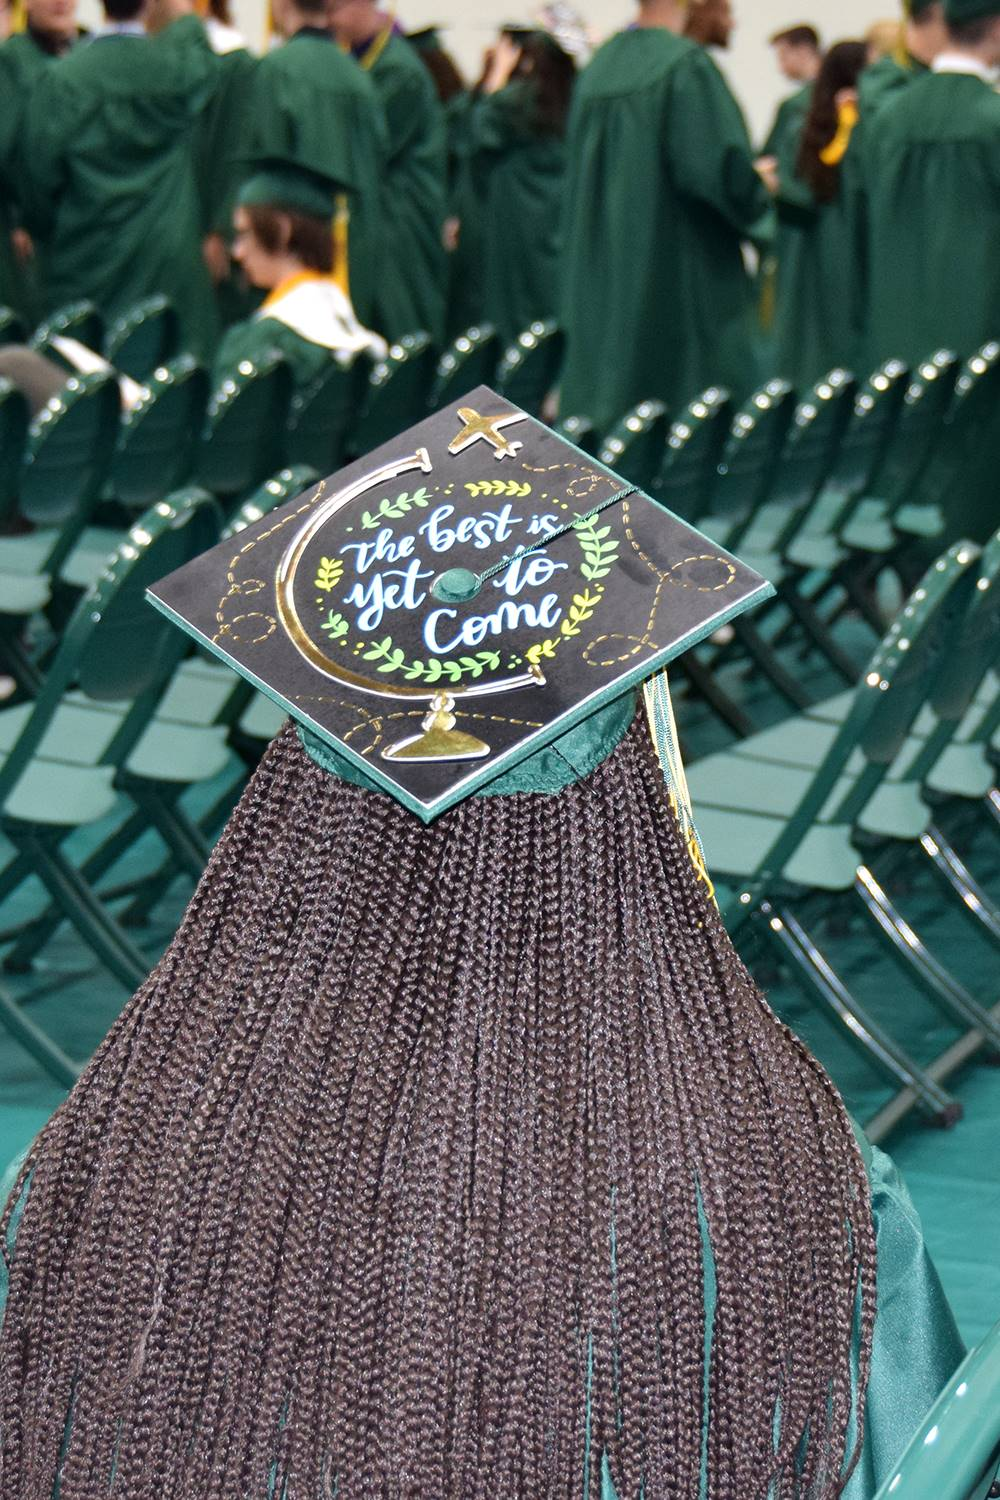 A Vestal High School senior with long braids sits as she waits for Graduation with a decorated morta